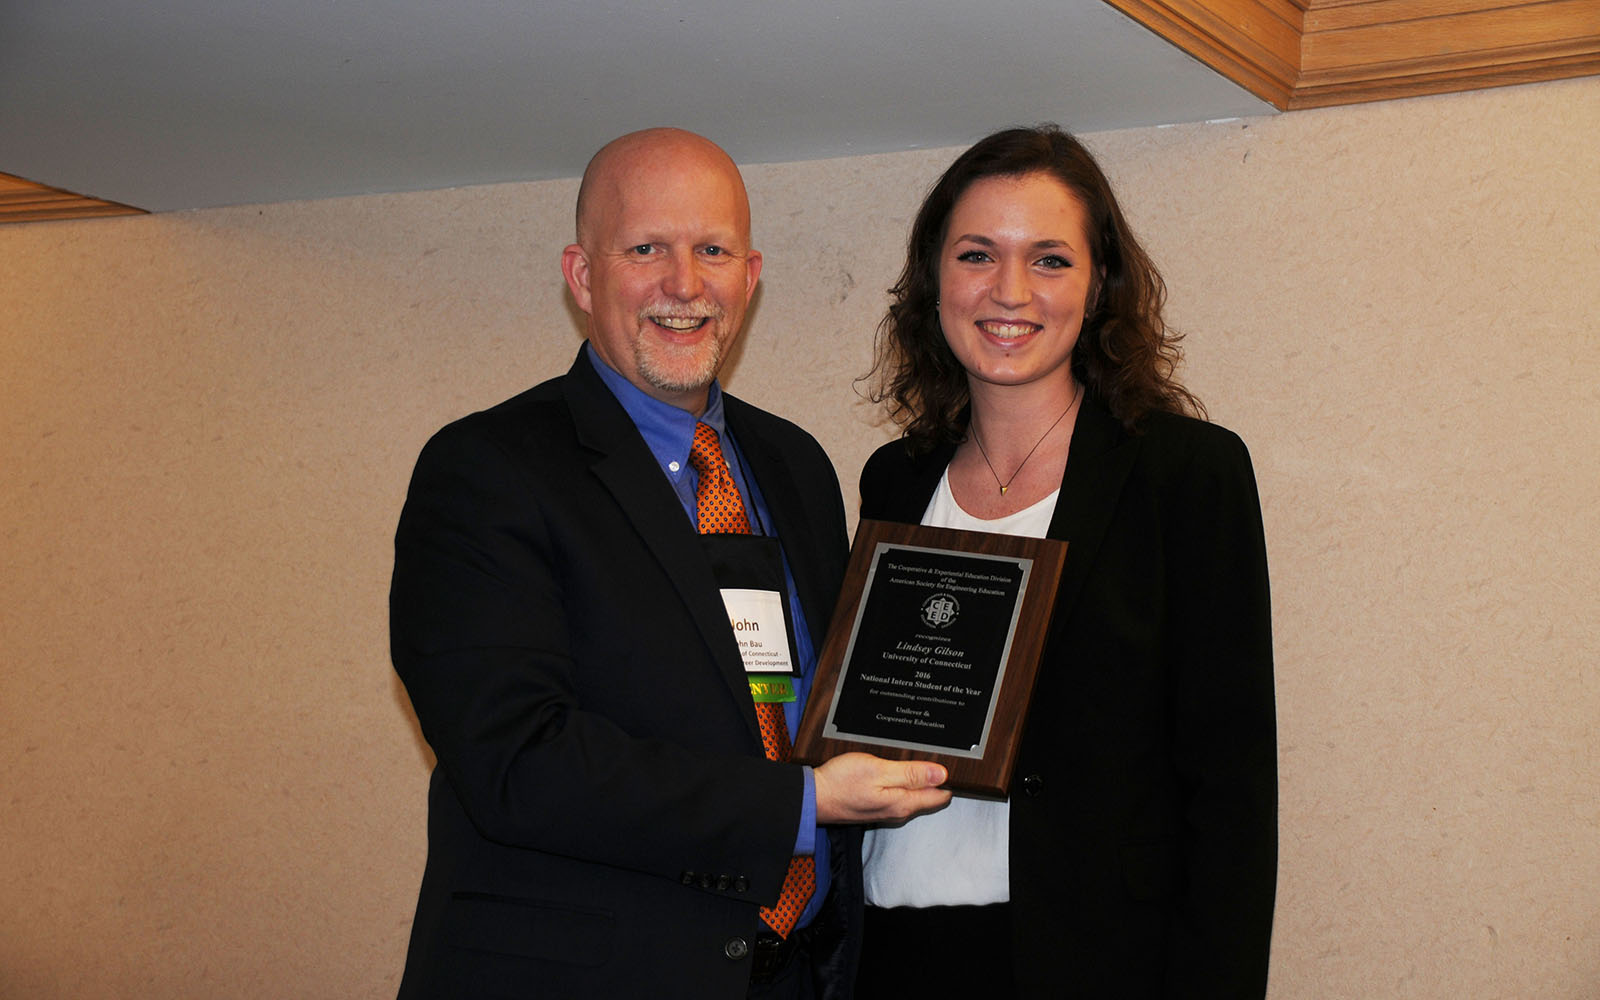 Lindsey Gilson (right) poses with UConn Engineering Career Consultant John Bau at the American Society for Engineering Education Award Ceremony. Bau nominated Gilson for the intern award. (Craig Gunn/ Cooperative and Experiential Education Division of the American Society for Engineering Education.)